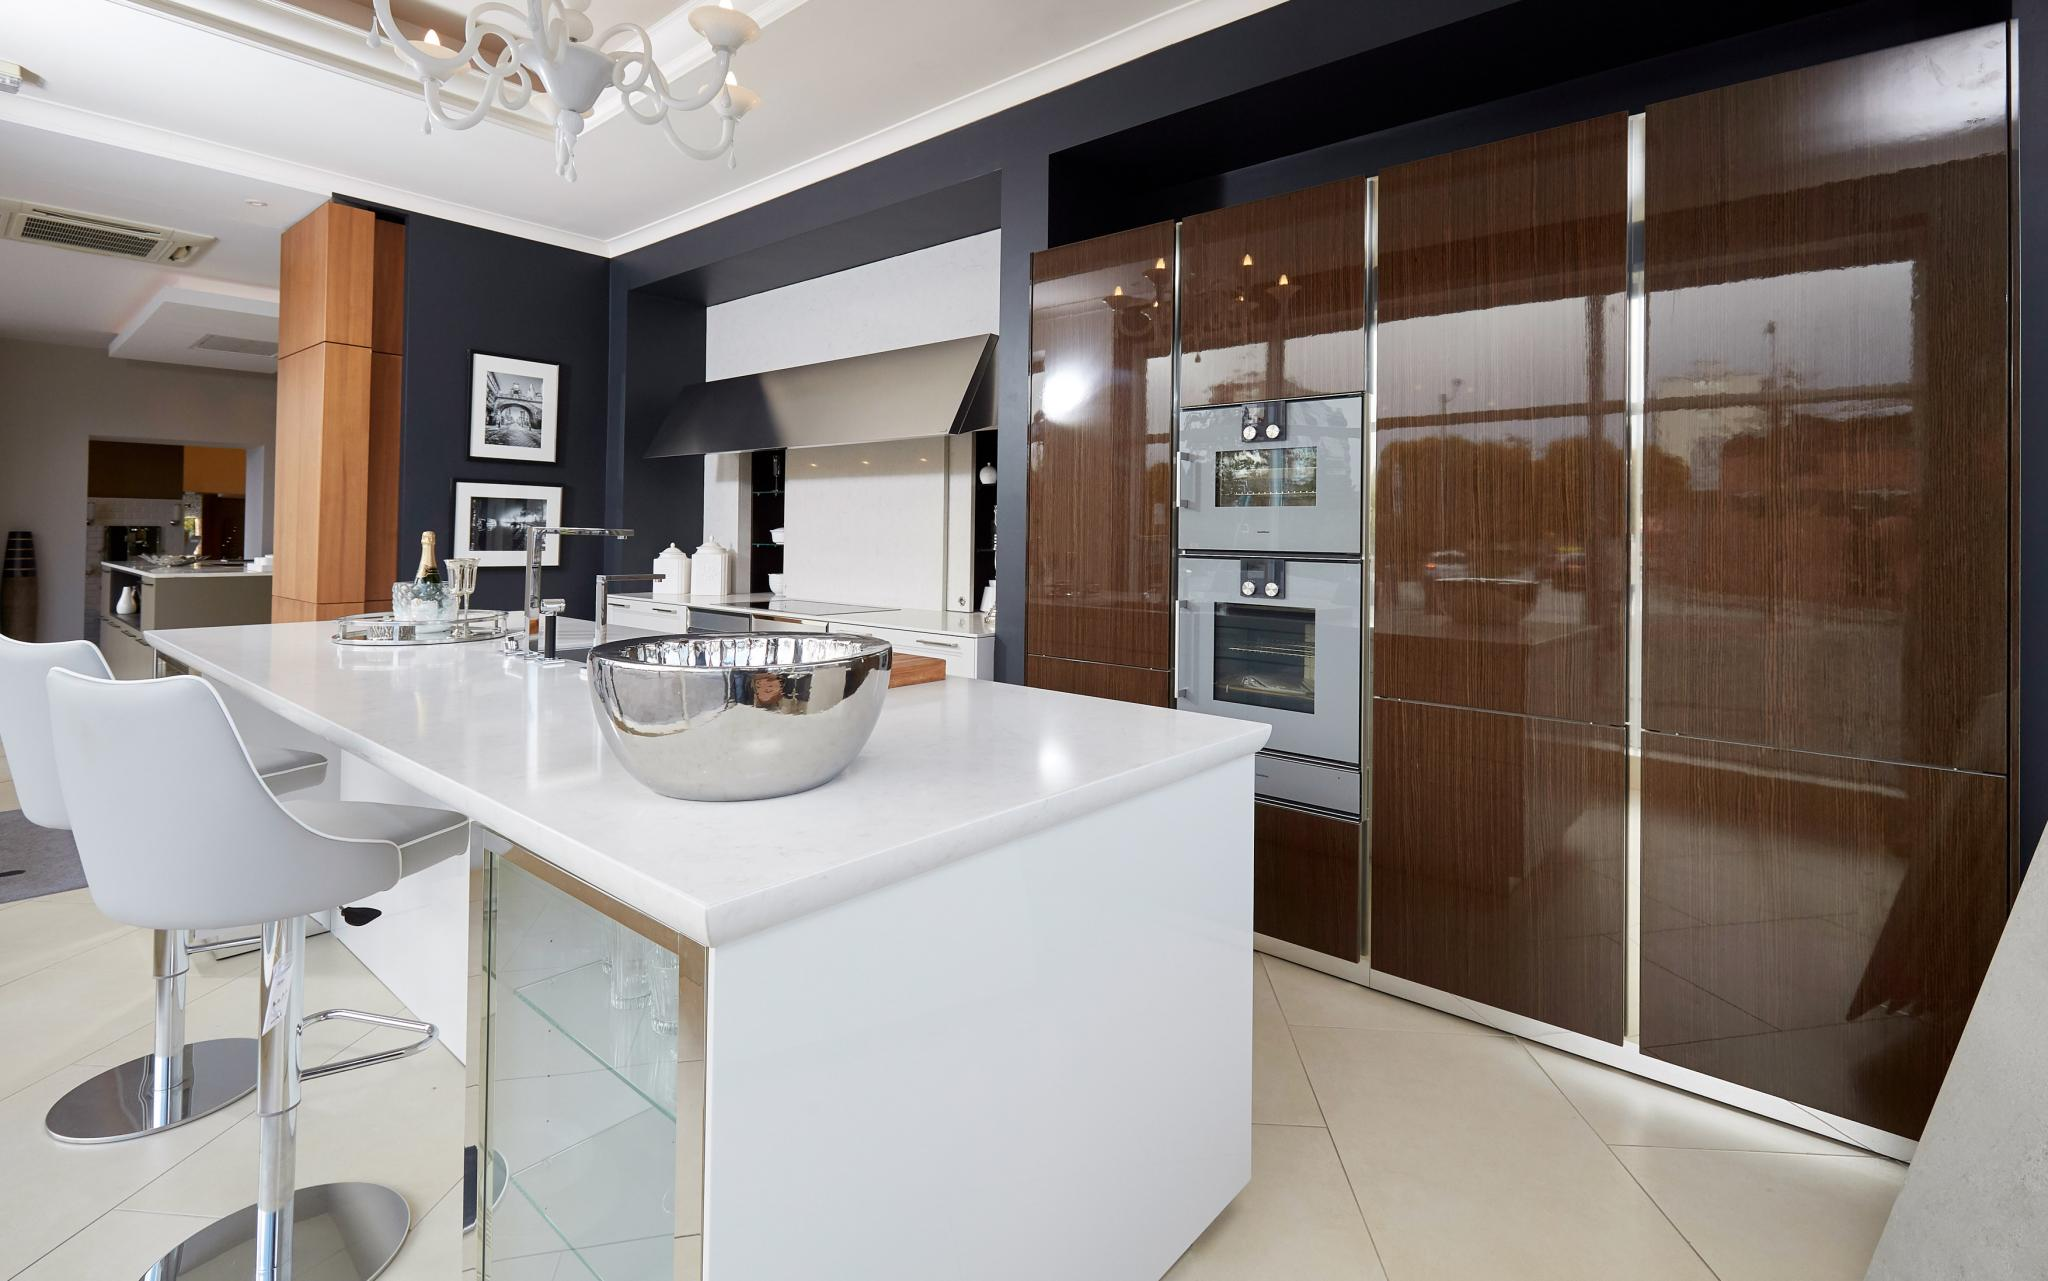 SIEMATIC BeauxArts 02 Ex Display Kitchen - Full View